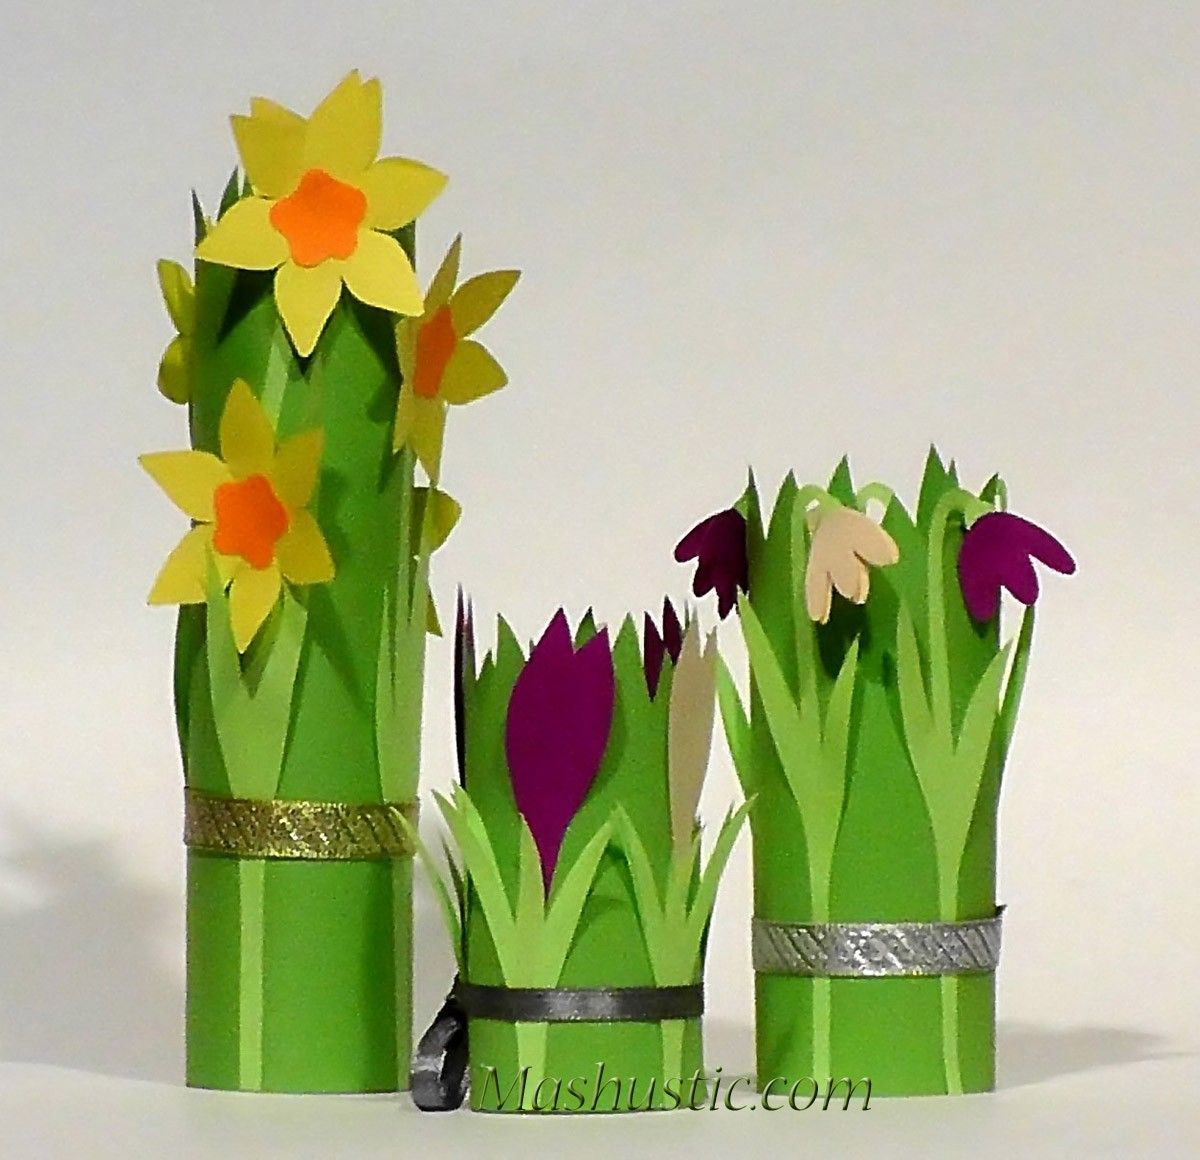 Pin By Garliccy On Diy And Crafts Paper Flowers For Kids Paper Flower Bouquet Flower Crafts